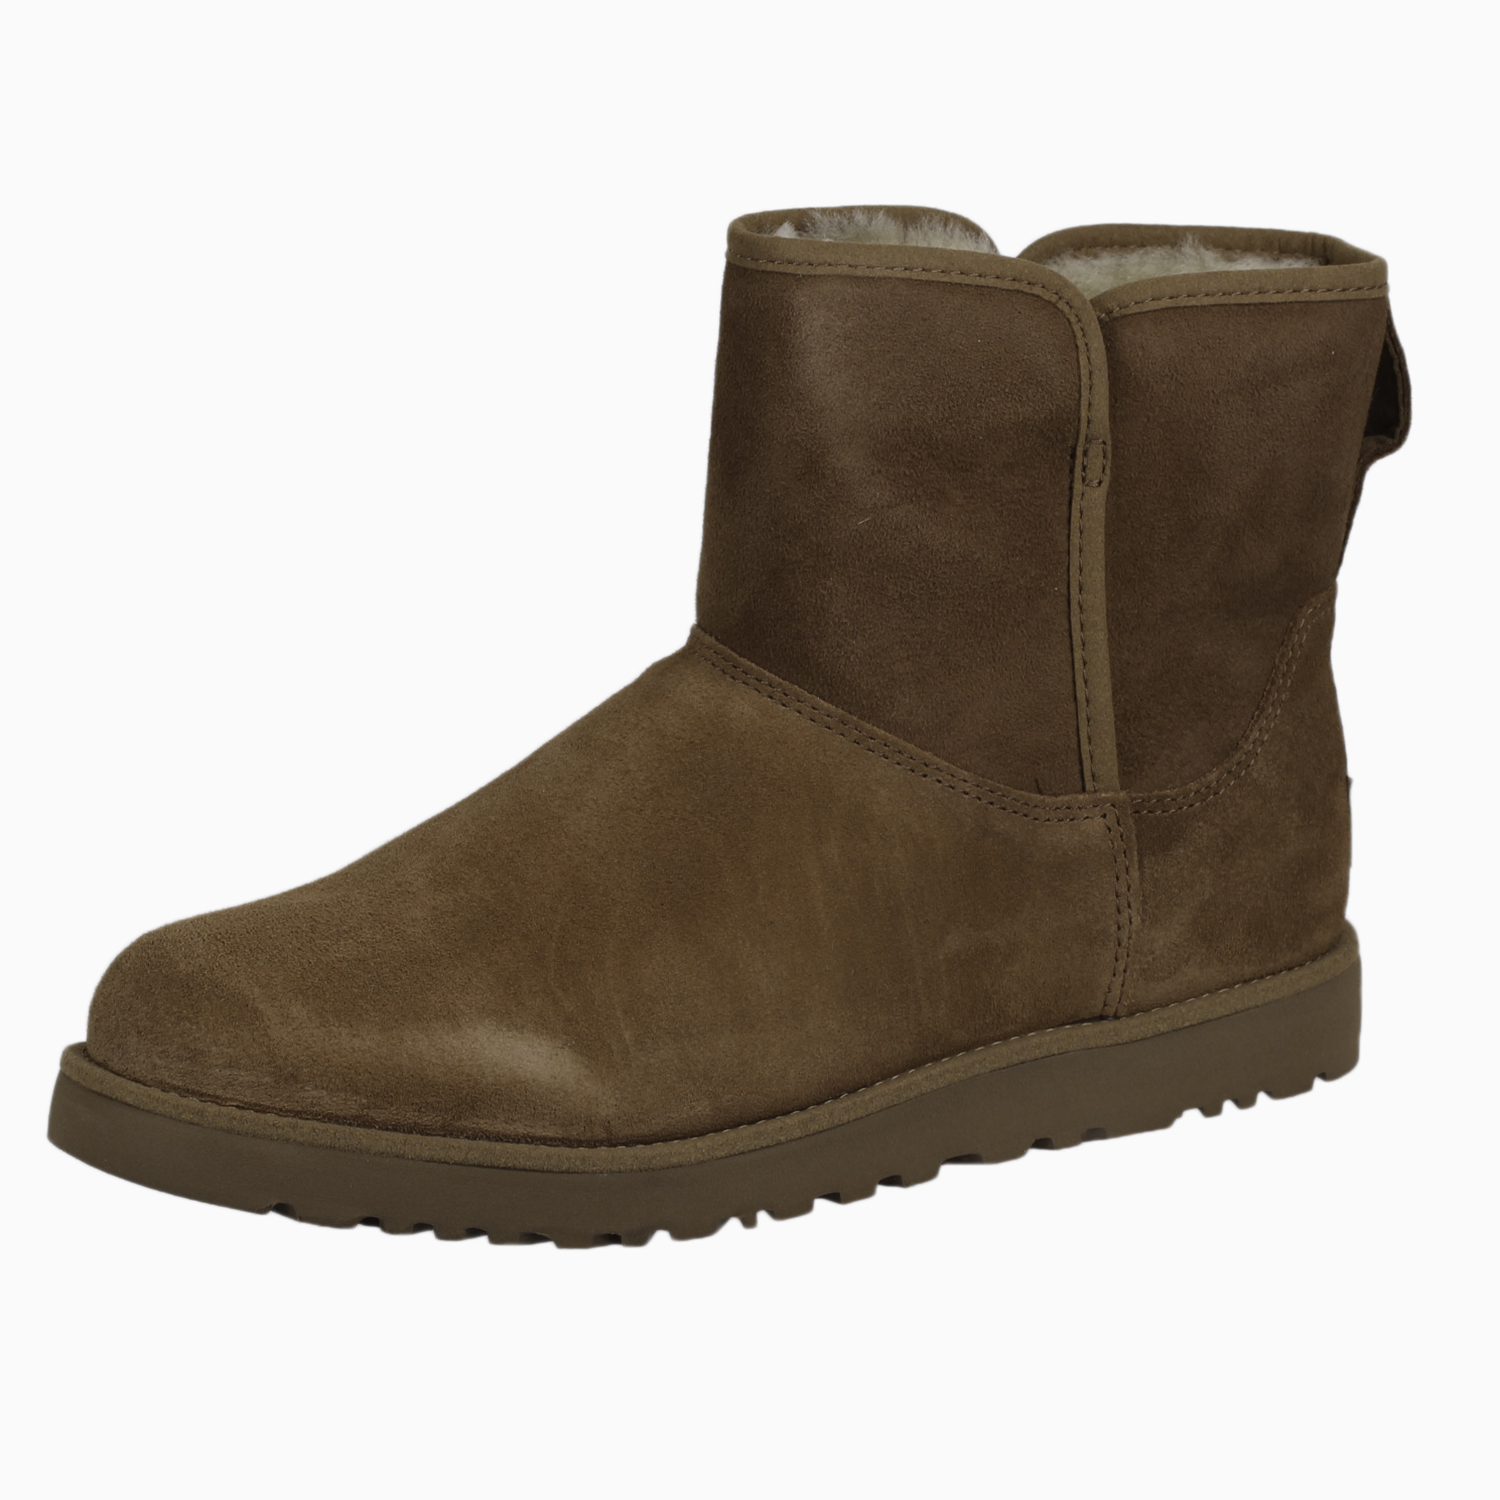 56ffe5785bf Details about UGG Women's Cory 1013437 Boot Shoes Chestnut